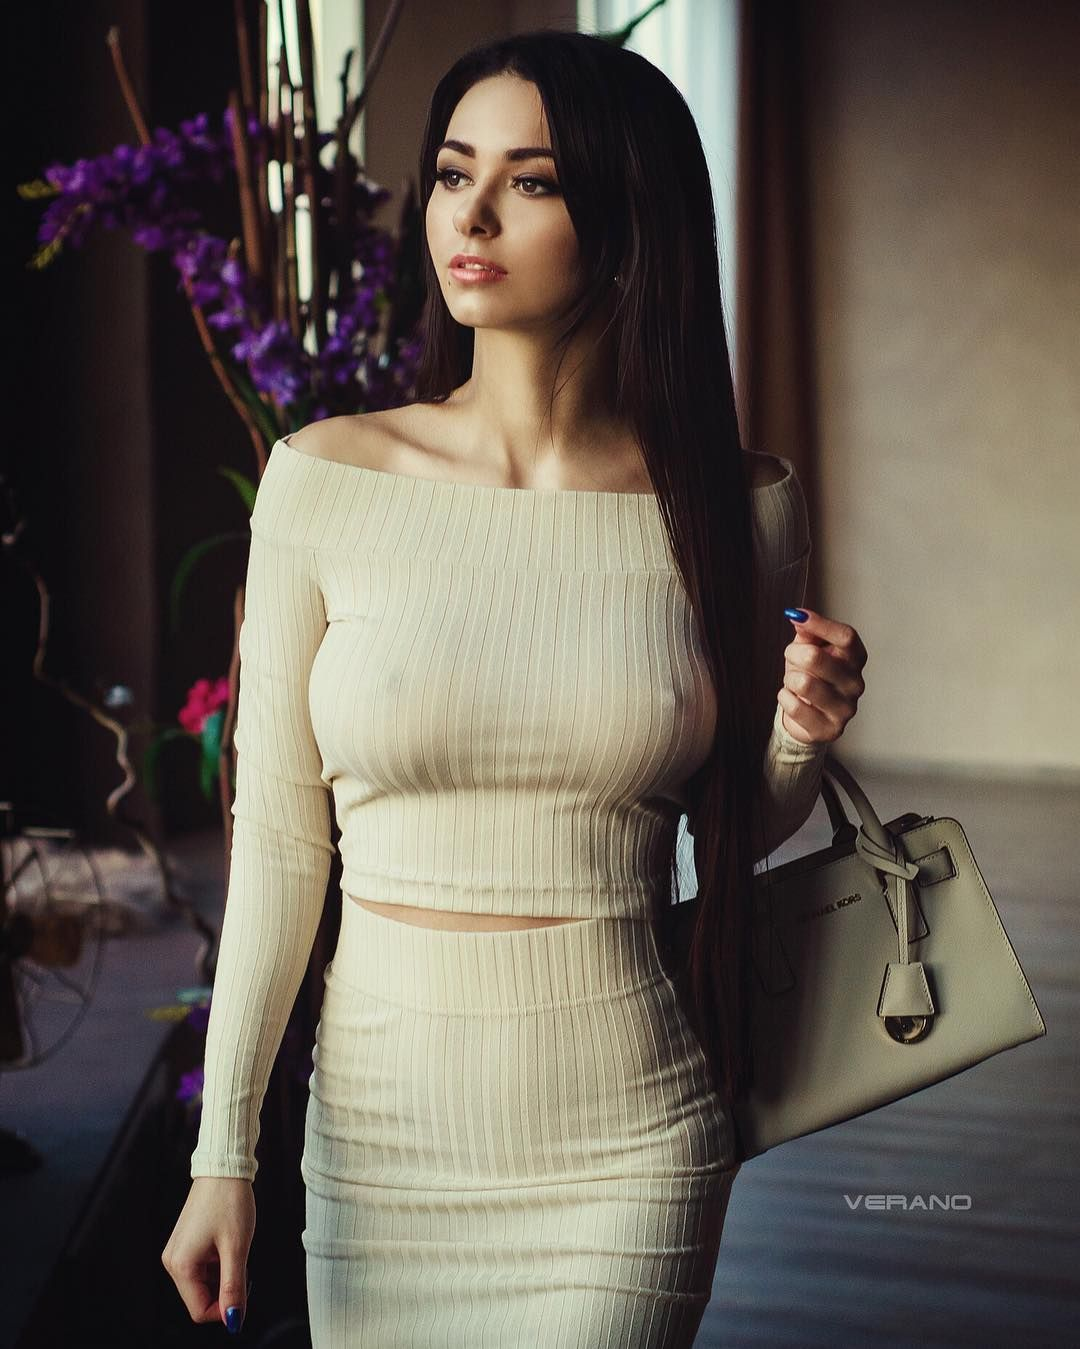 Helga Lovekaty nude (37 photos) Erotica, 2015, underwear